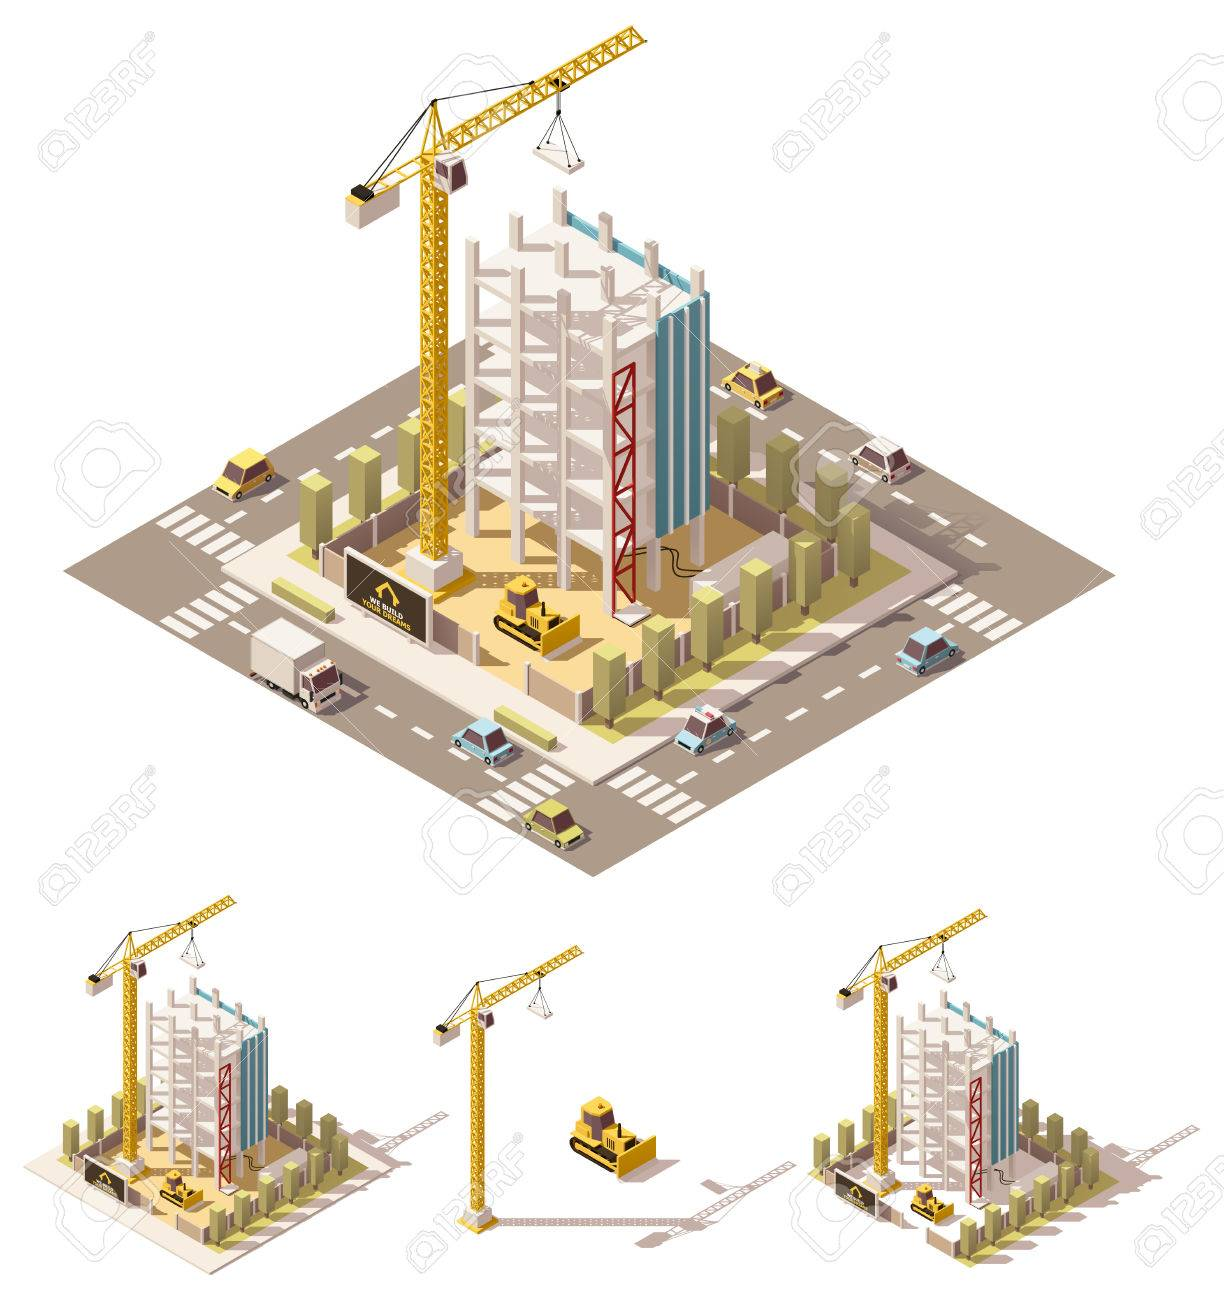 isometric low poly building construction site - 67962574